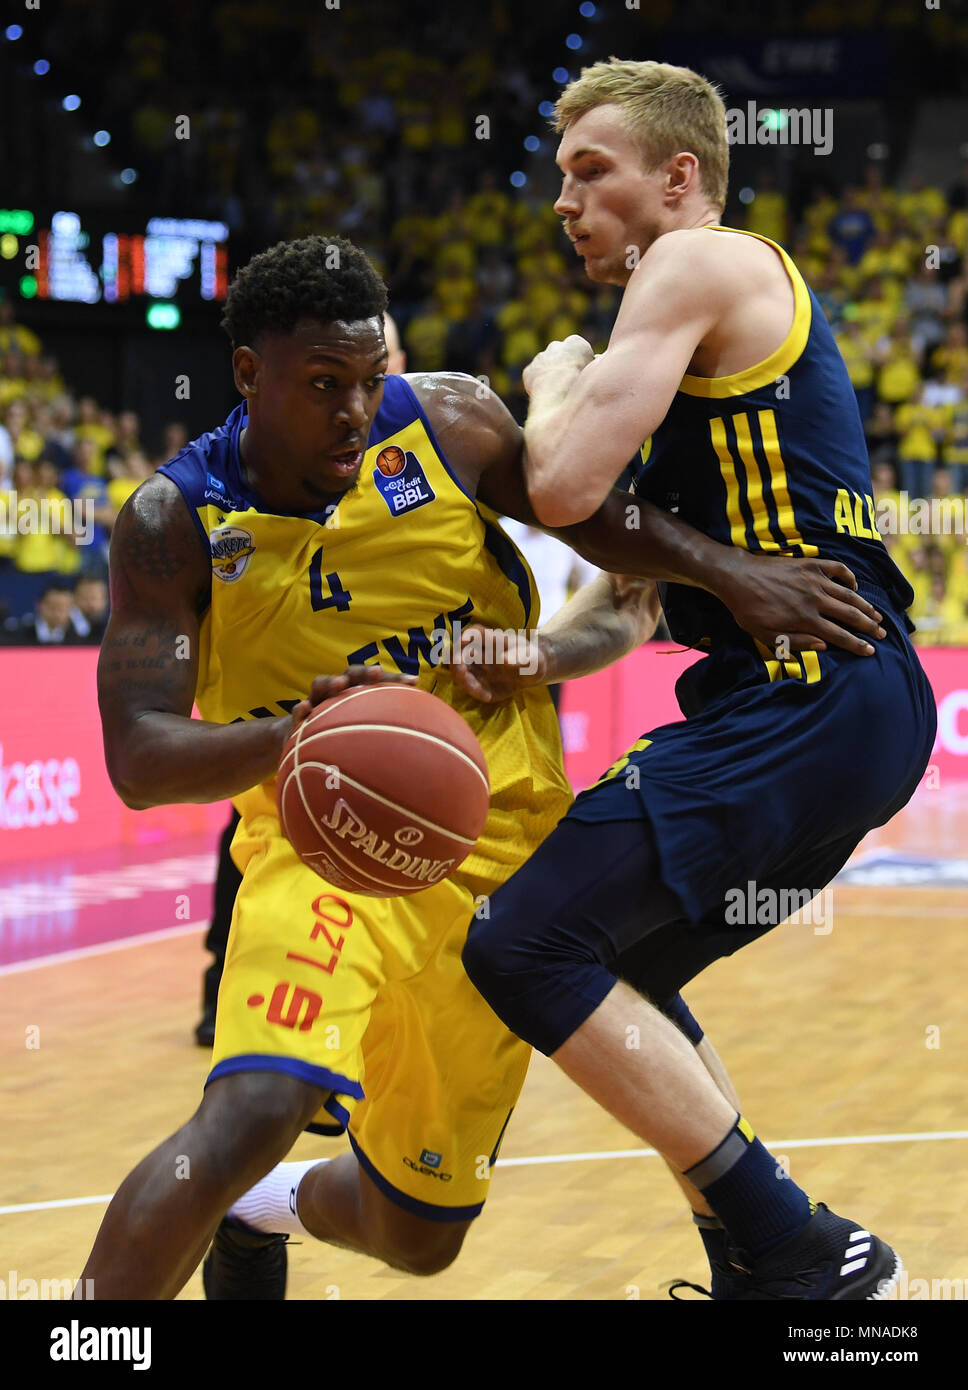 15 May 2018, Germany, Oldenburg: Bundesliga, EWE Baskets Oldenburg vs ALBA Berlin, championship round, quarter-final, in the EWE Arena. Oldenburg's Armani Moore (L) attempting to overcome Berlin's Niels Giffey. Photo: Carmen Jaspersen/dpa - Stock Image